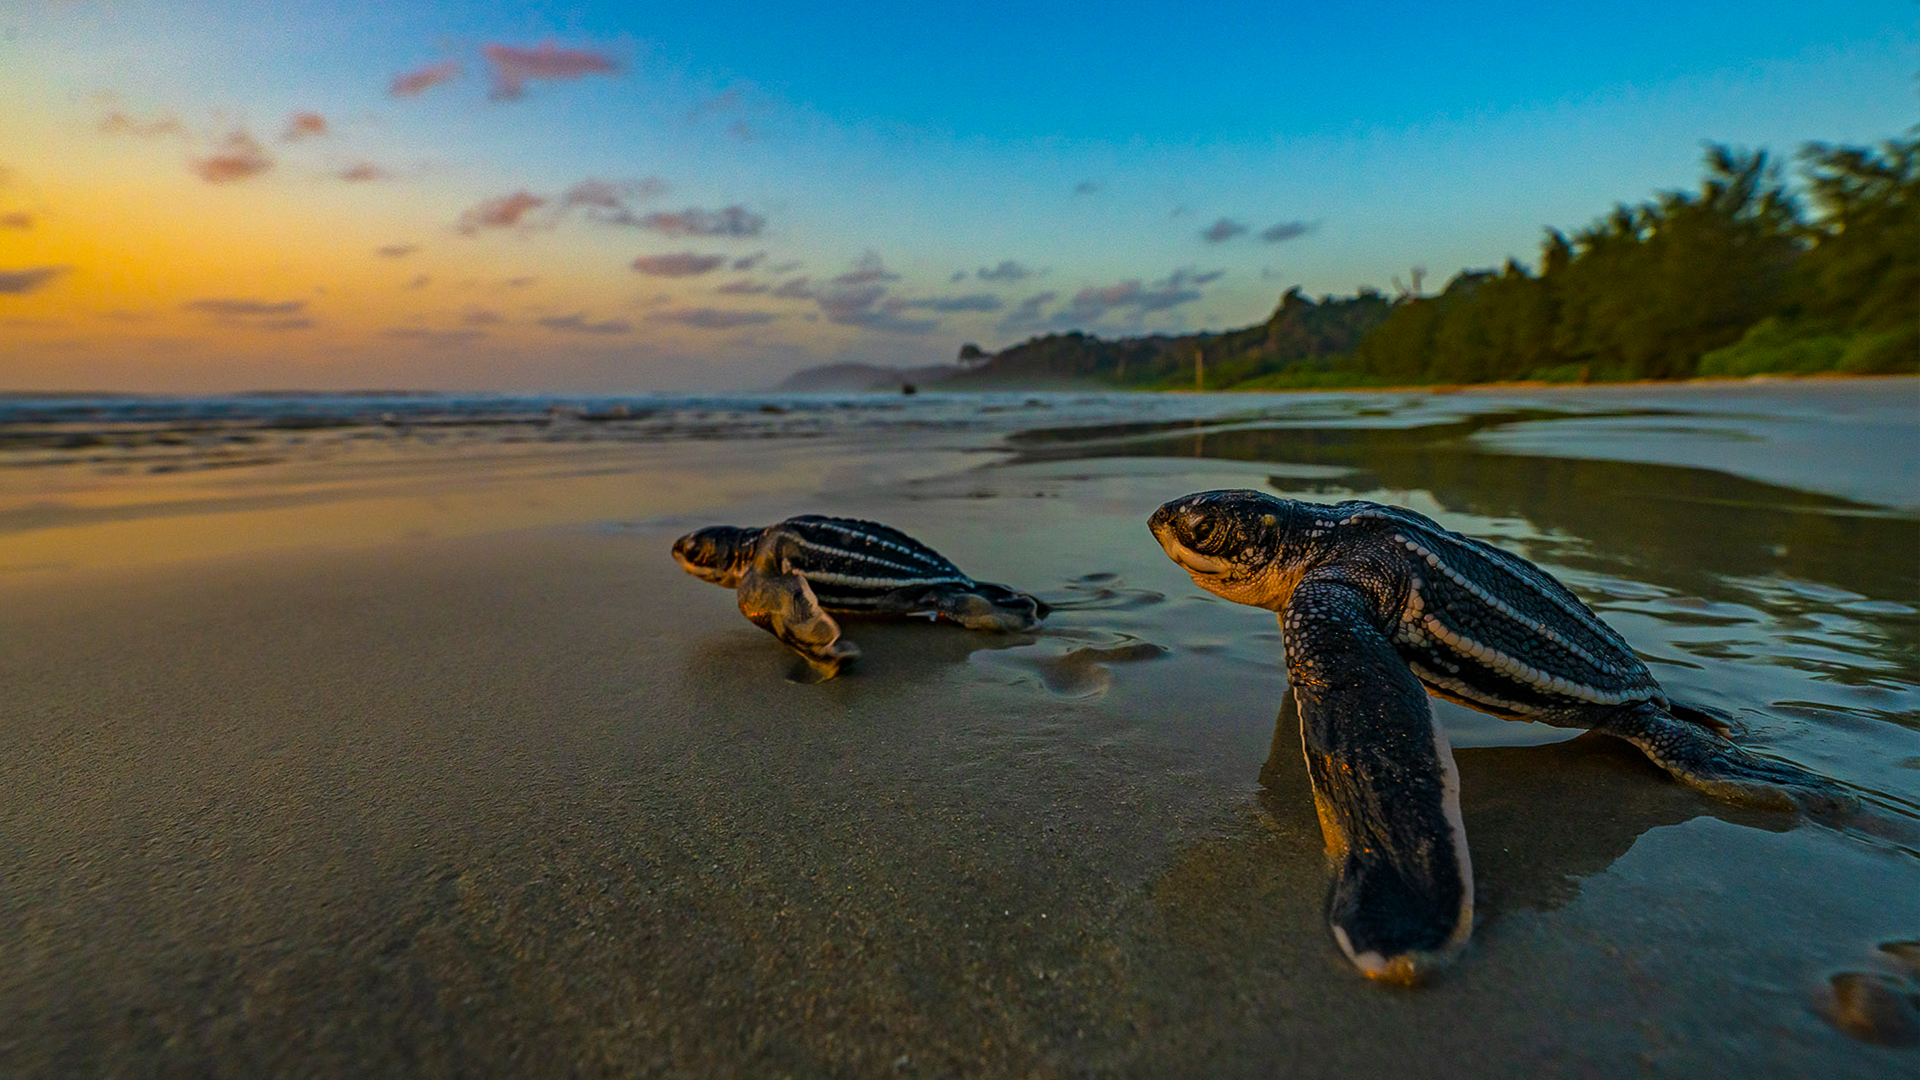 Galathea Bay: Will the World's Largest Sea Turtle Return to Nest in India?